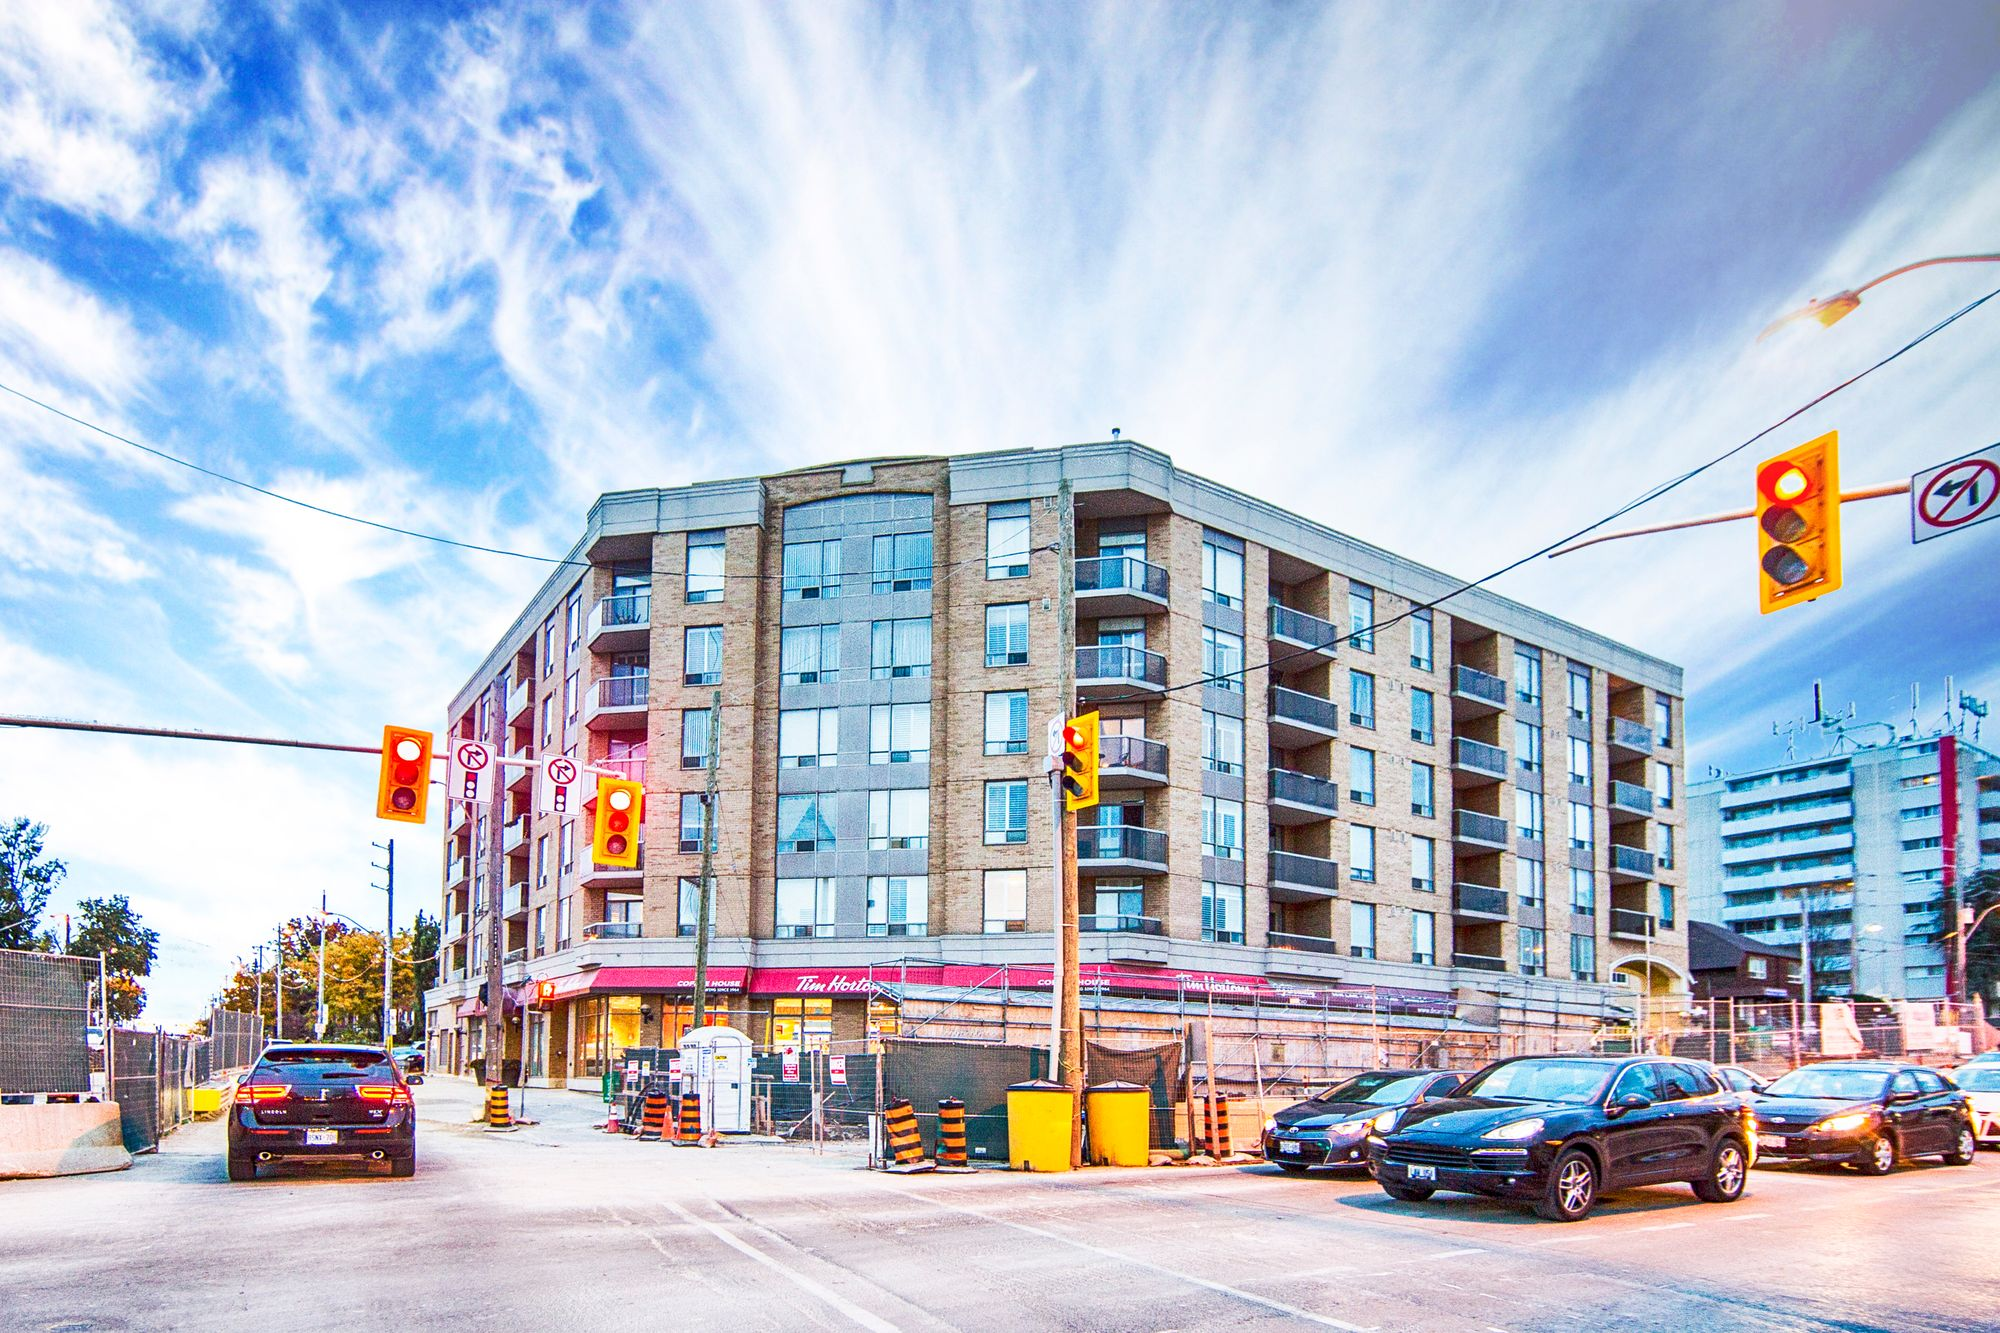 The Braxton at 1750 Bayview Ave. This condo is located in  Midtown, Toronto - image #1 of 4 by Strata.ca